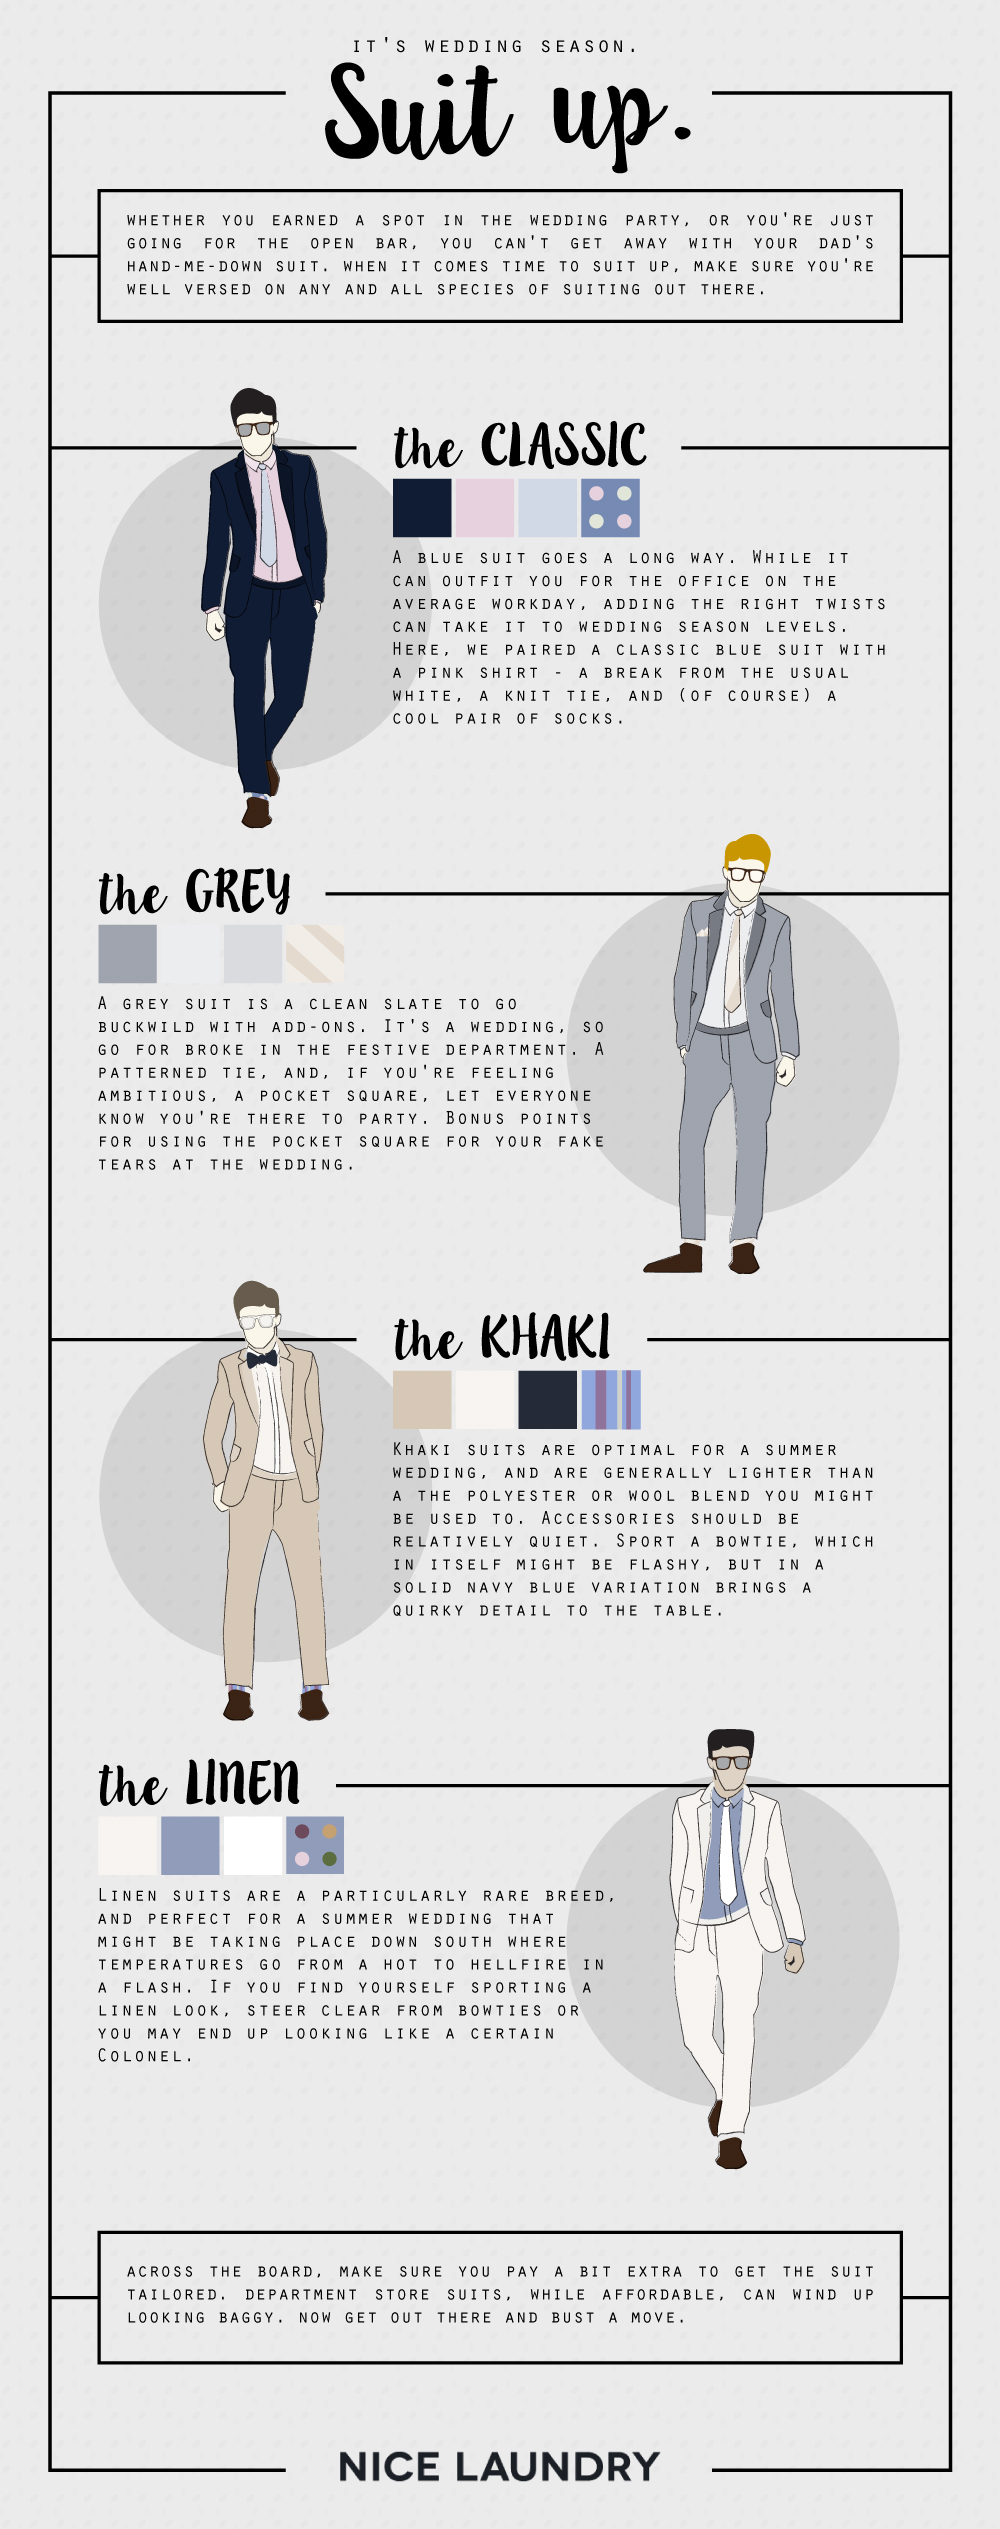 Suit-Up-Wedding-Season-Nice-Laundry-Infographic